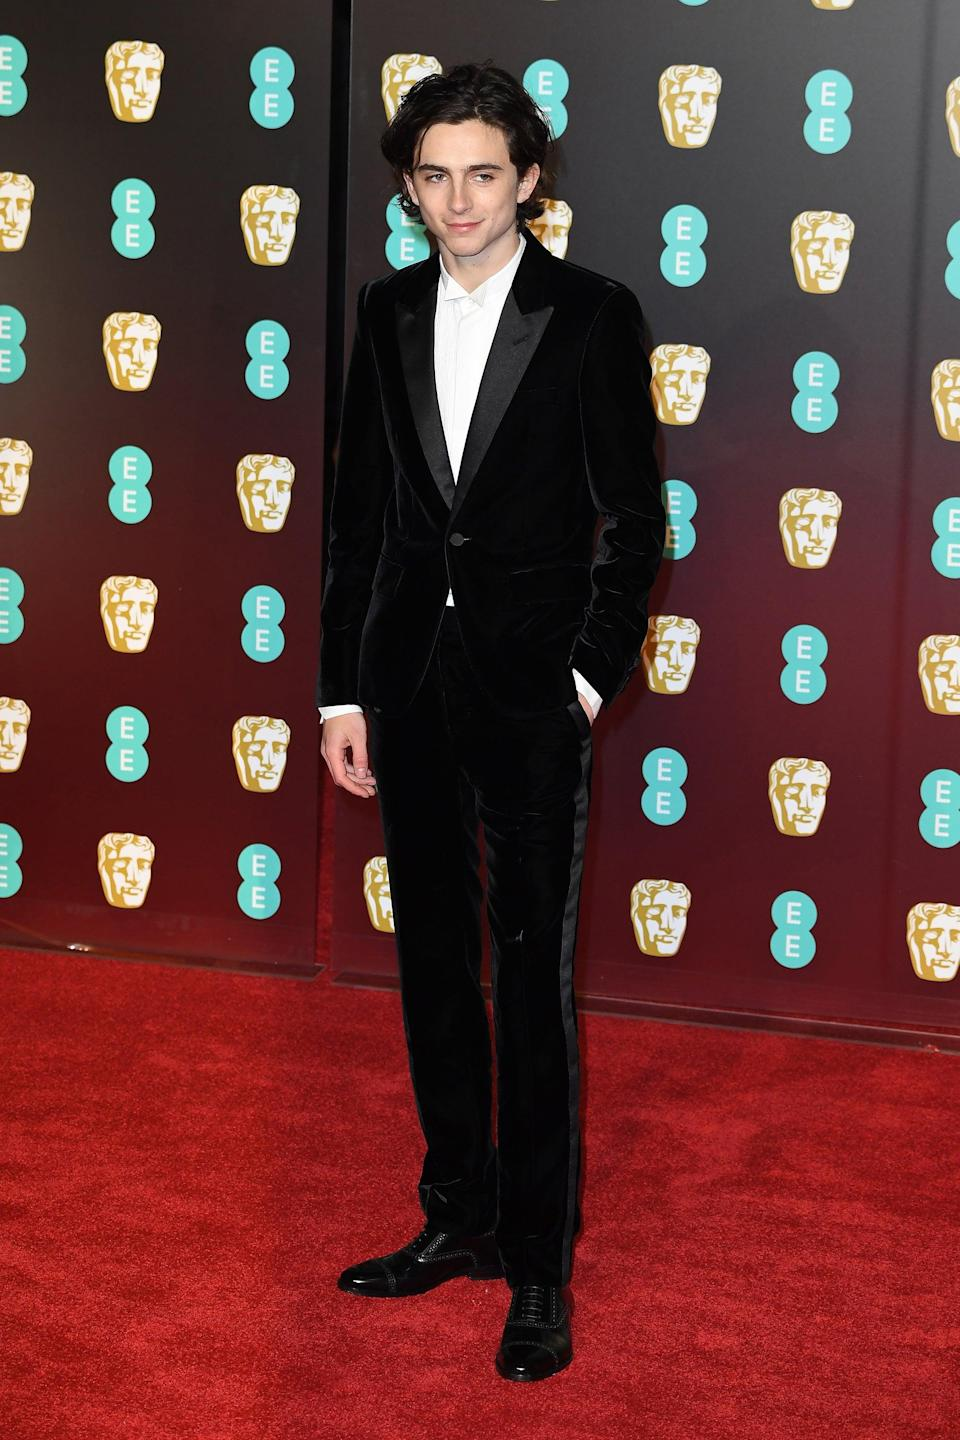 "<h2>Saint Laurent</h2> Timothée Chalamet doesn't know how to do anything the traditional way. Case in point: his choice of a velvet tux while everyone else plays it safe in, <em>well</em>, not velvet.<br><span class=""copyright"">Photo: Jeff Spicer/Getty Images.</span>"